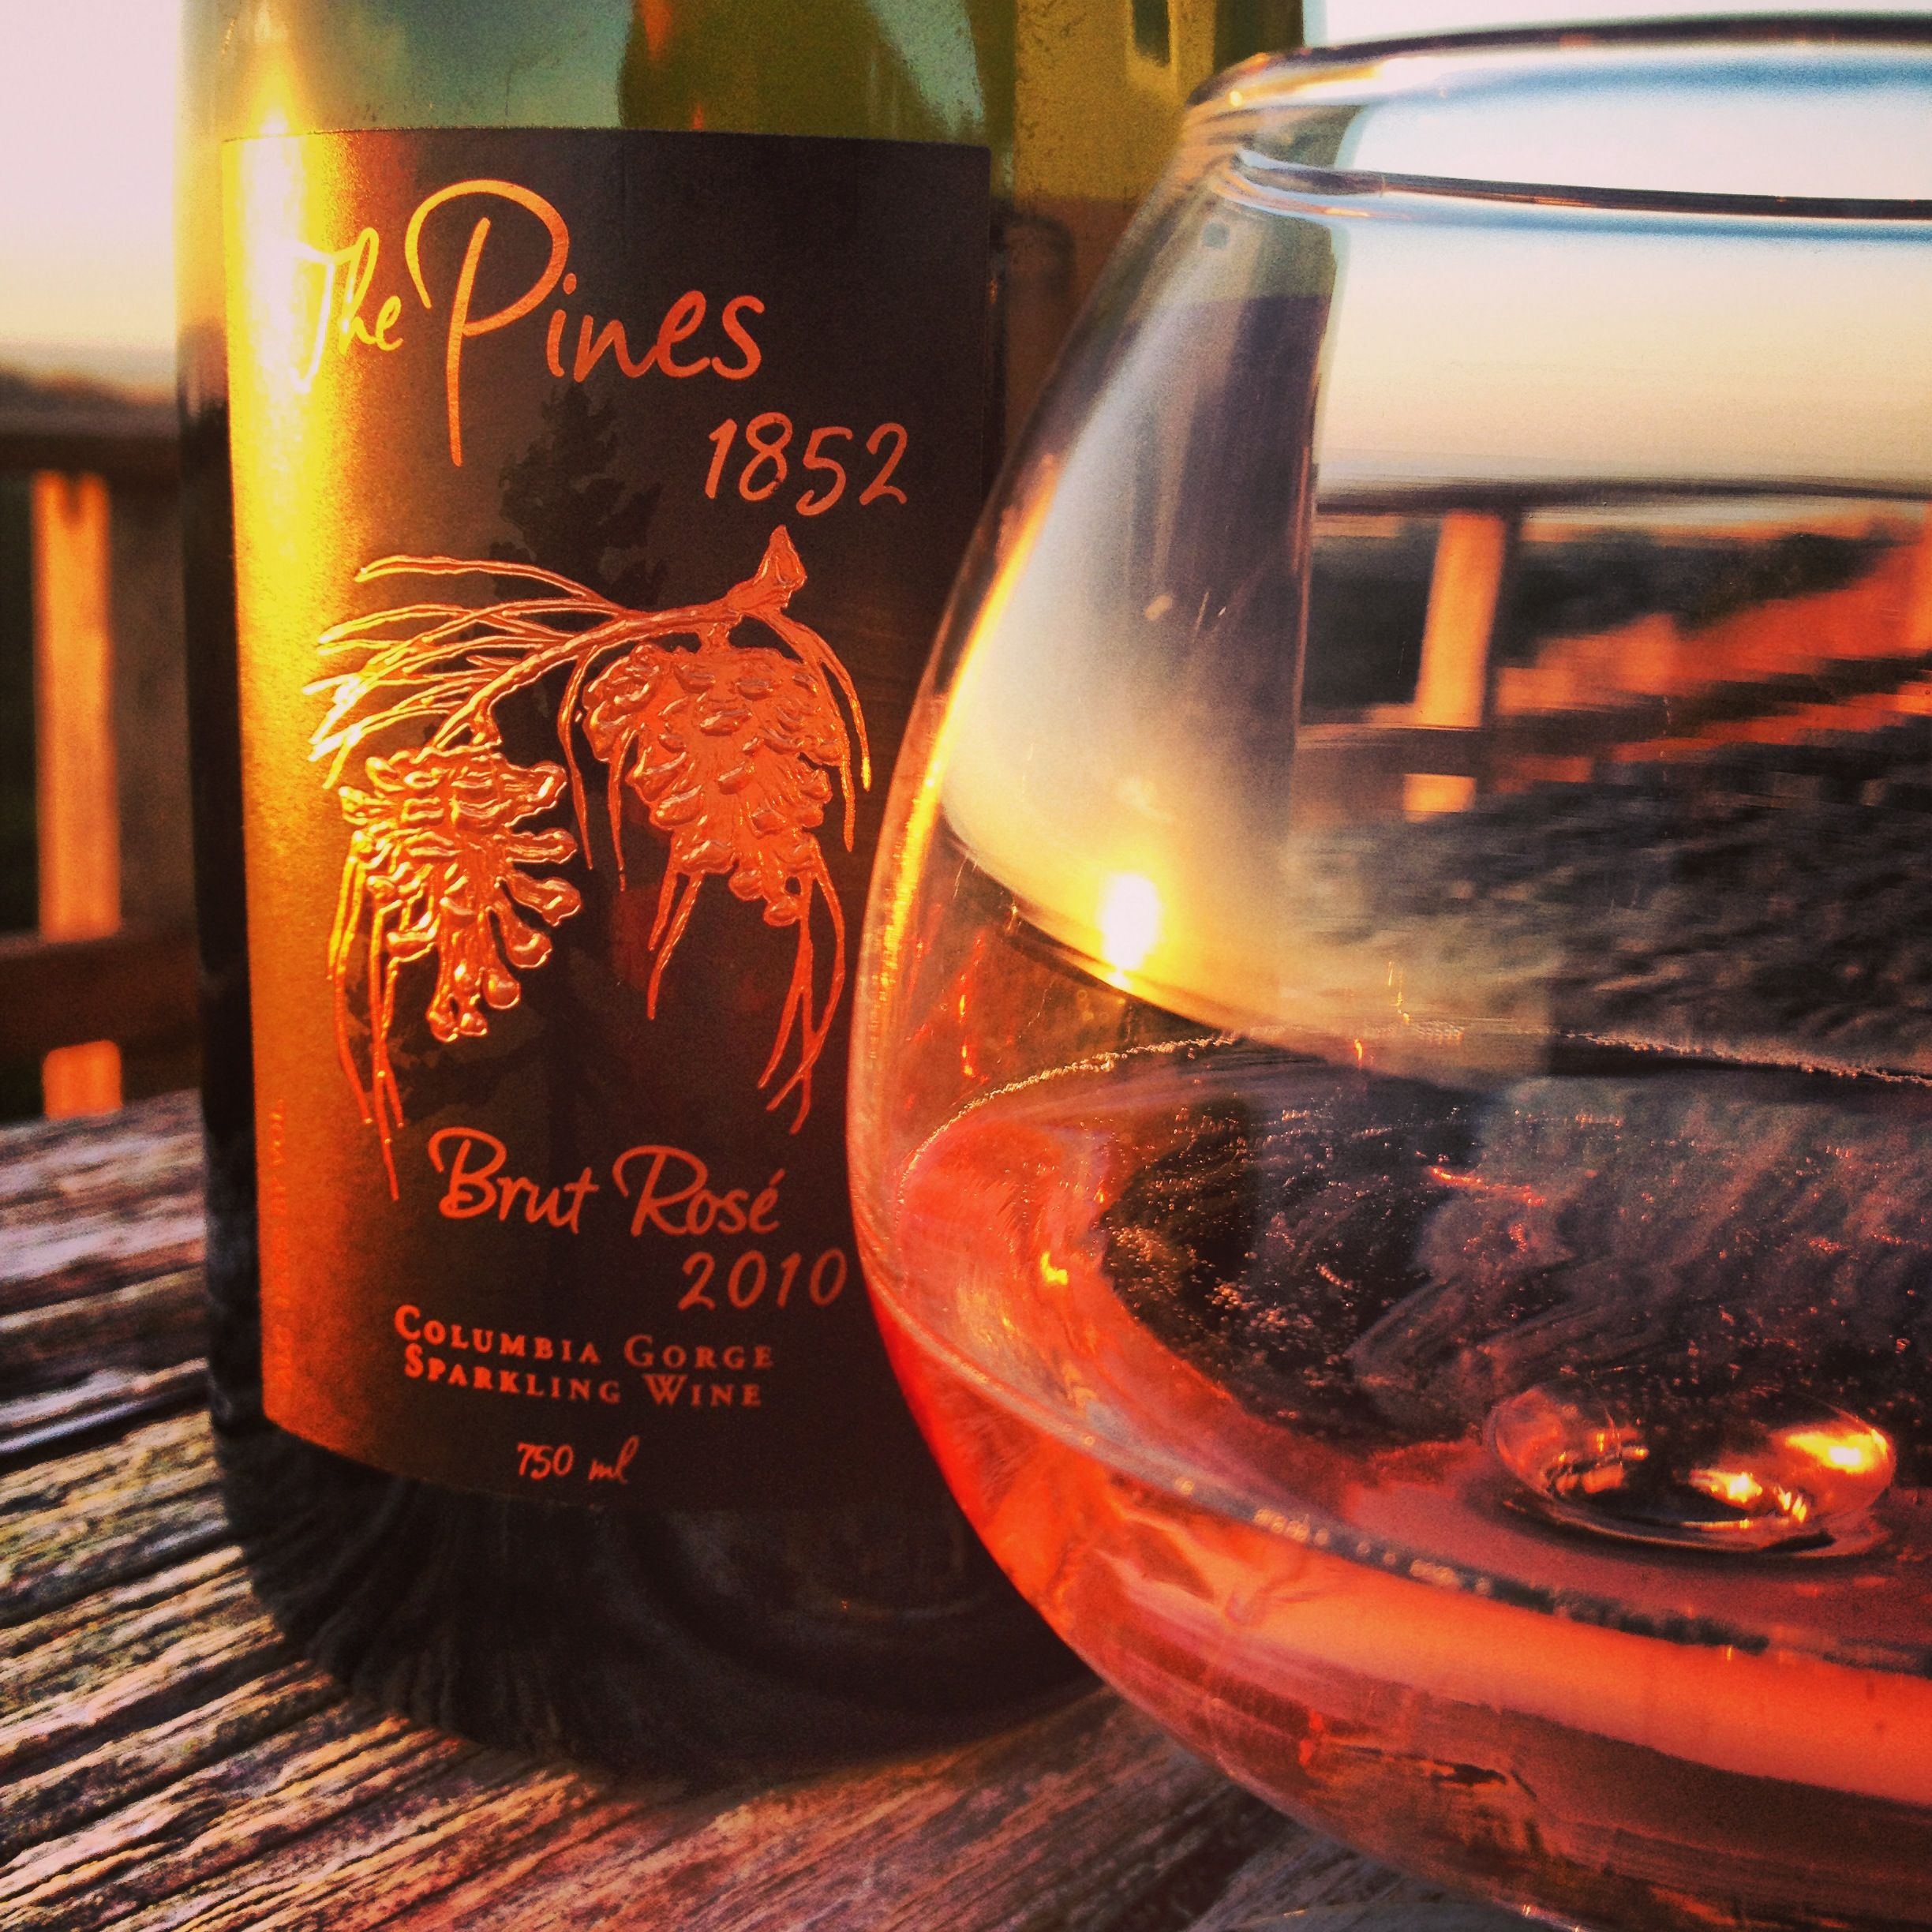 Pair This The Pines 1852 Brut Rose With A Pacific Coast Sunset Pacific Coast Sunset Rose